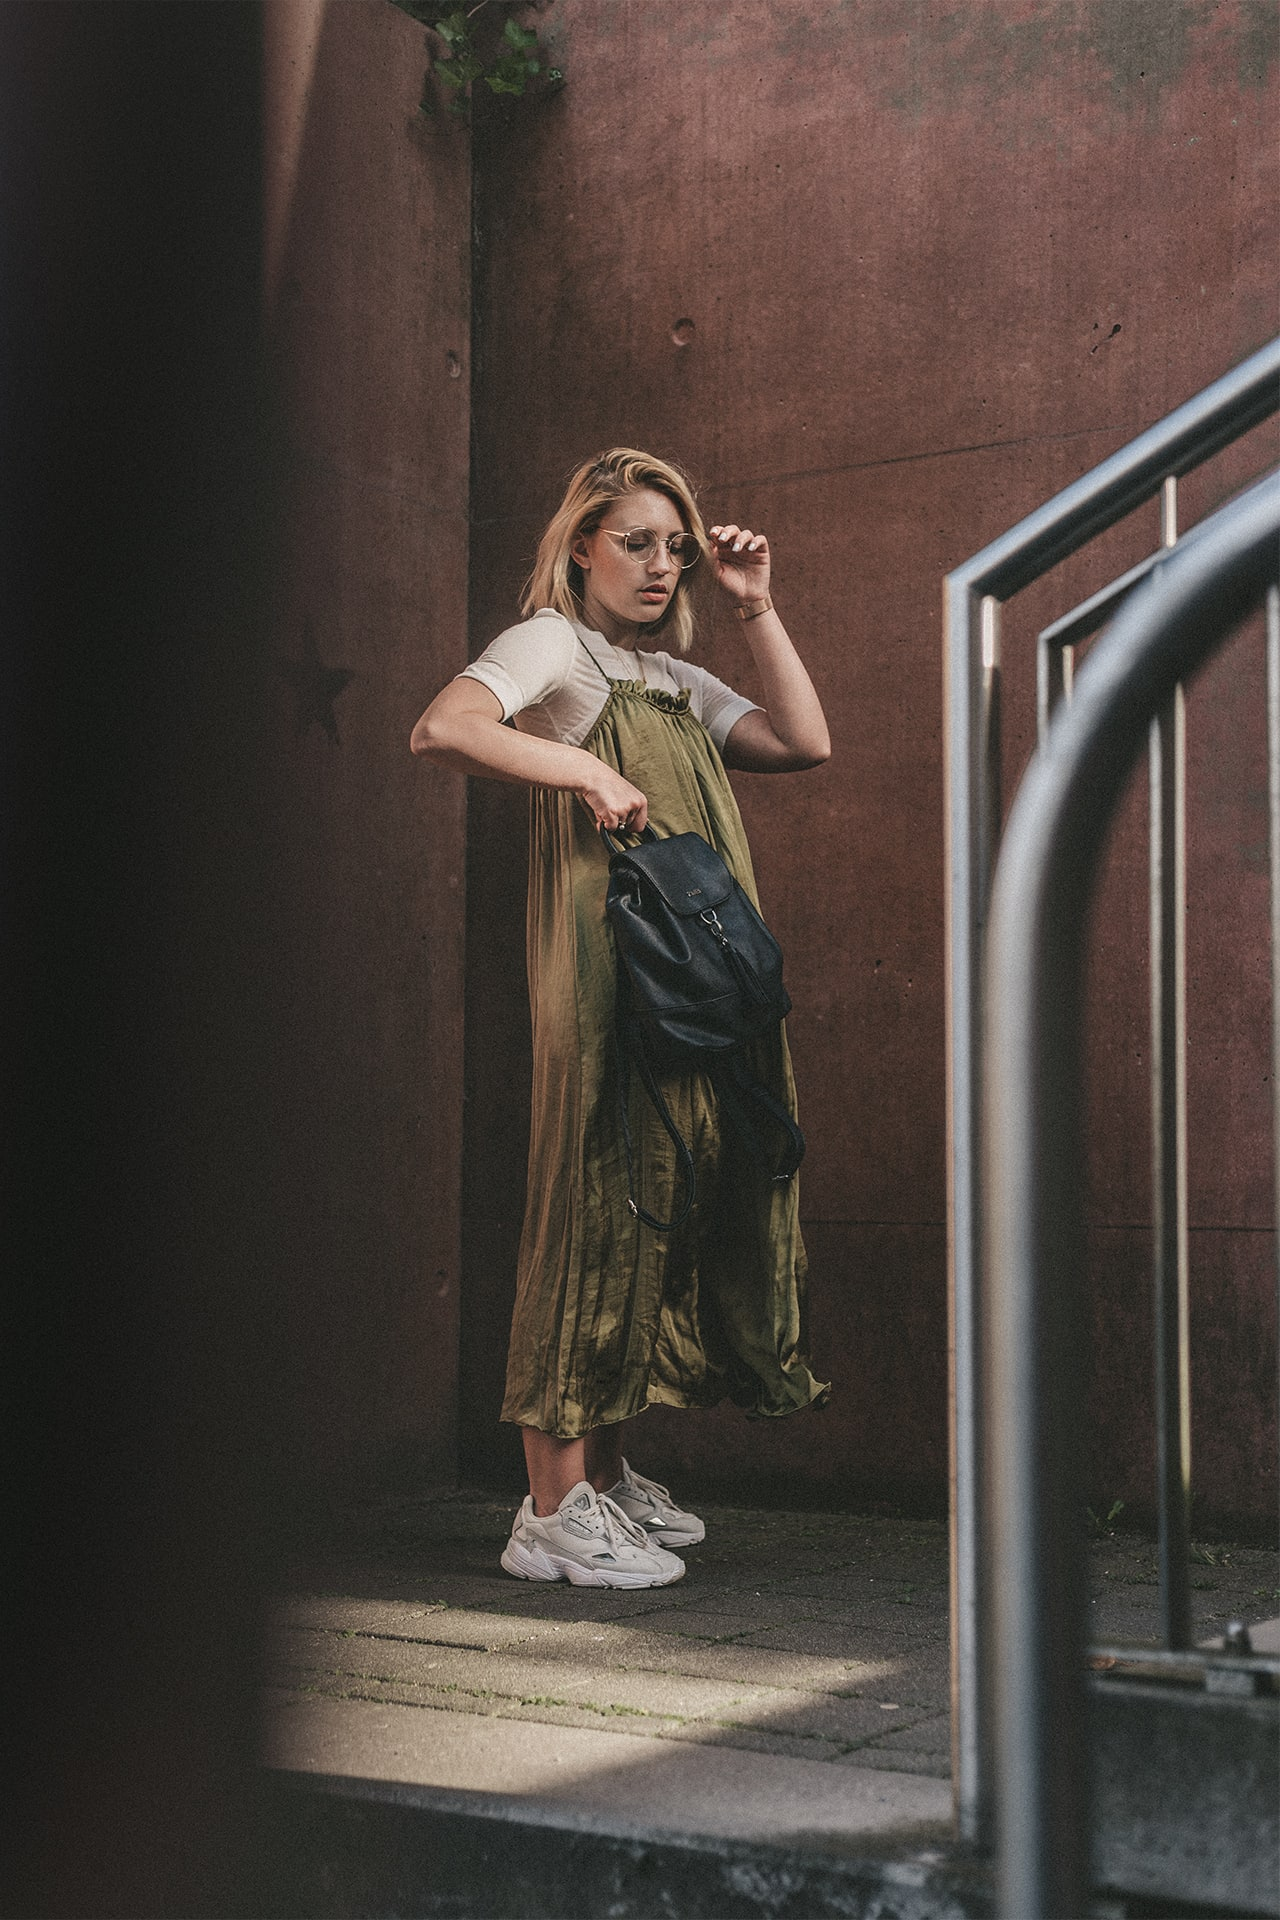 Langes Slipdress mit T-Shirt und Sneakers | Urban Outfit Inspiration | C'est Levi Fashionblog